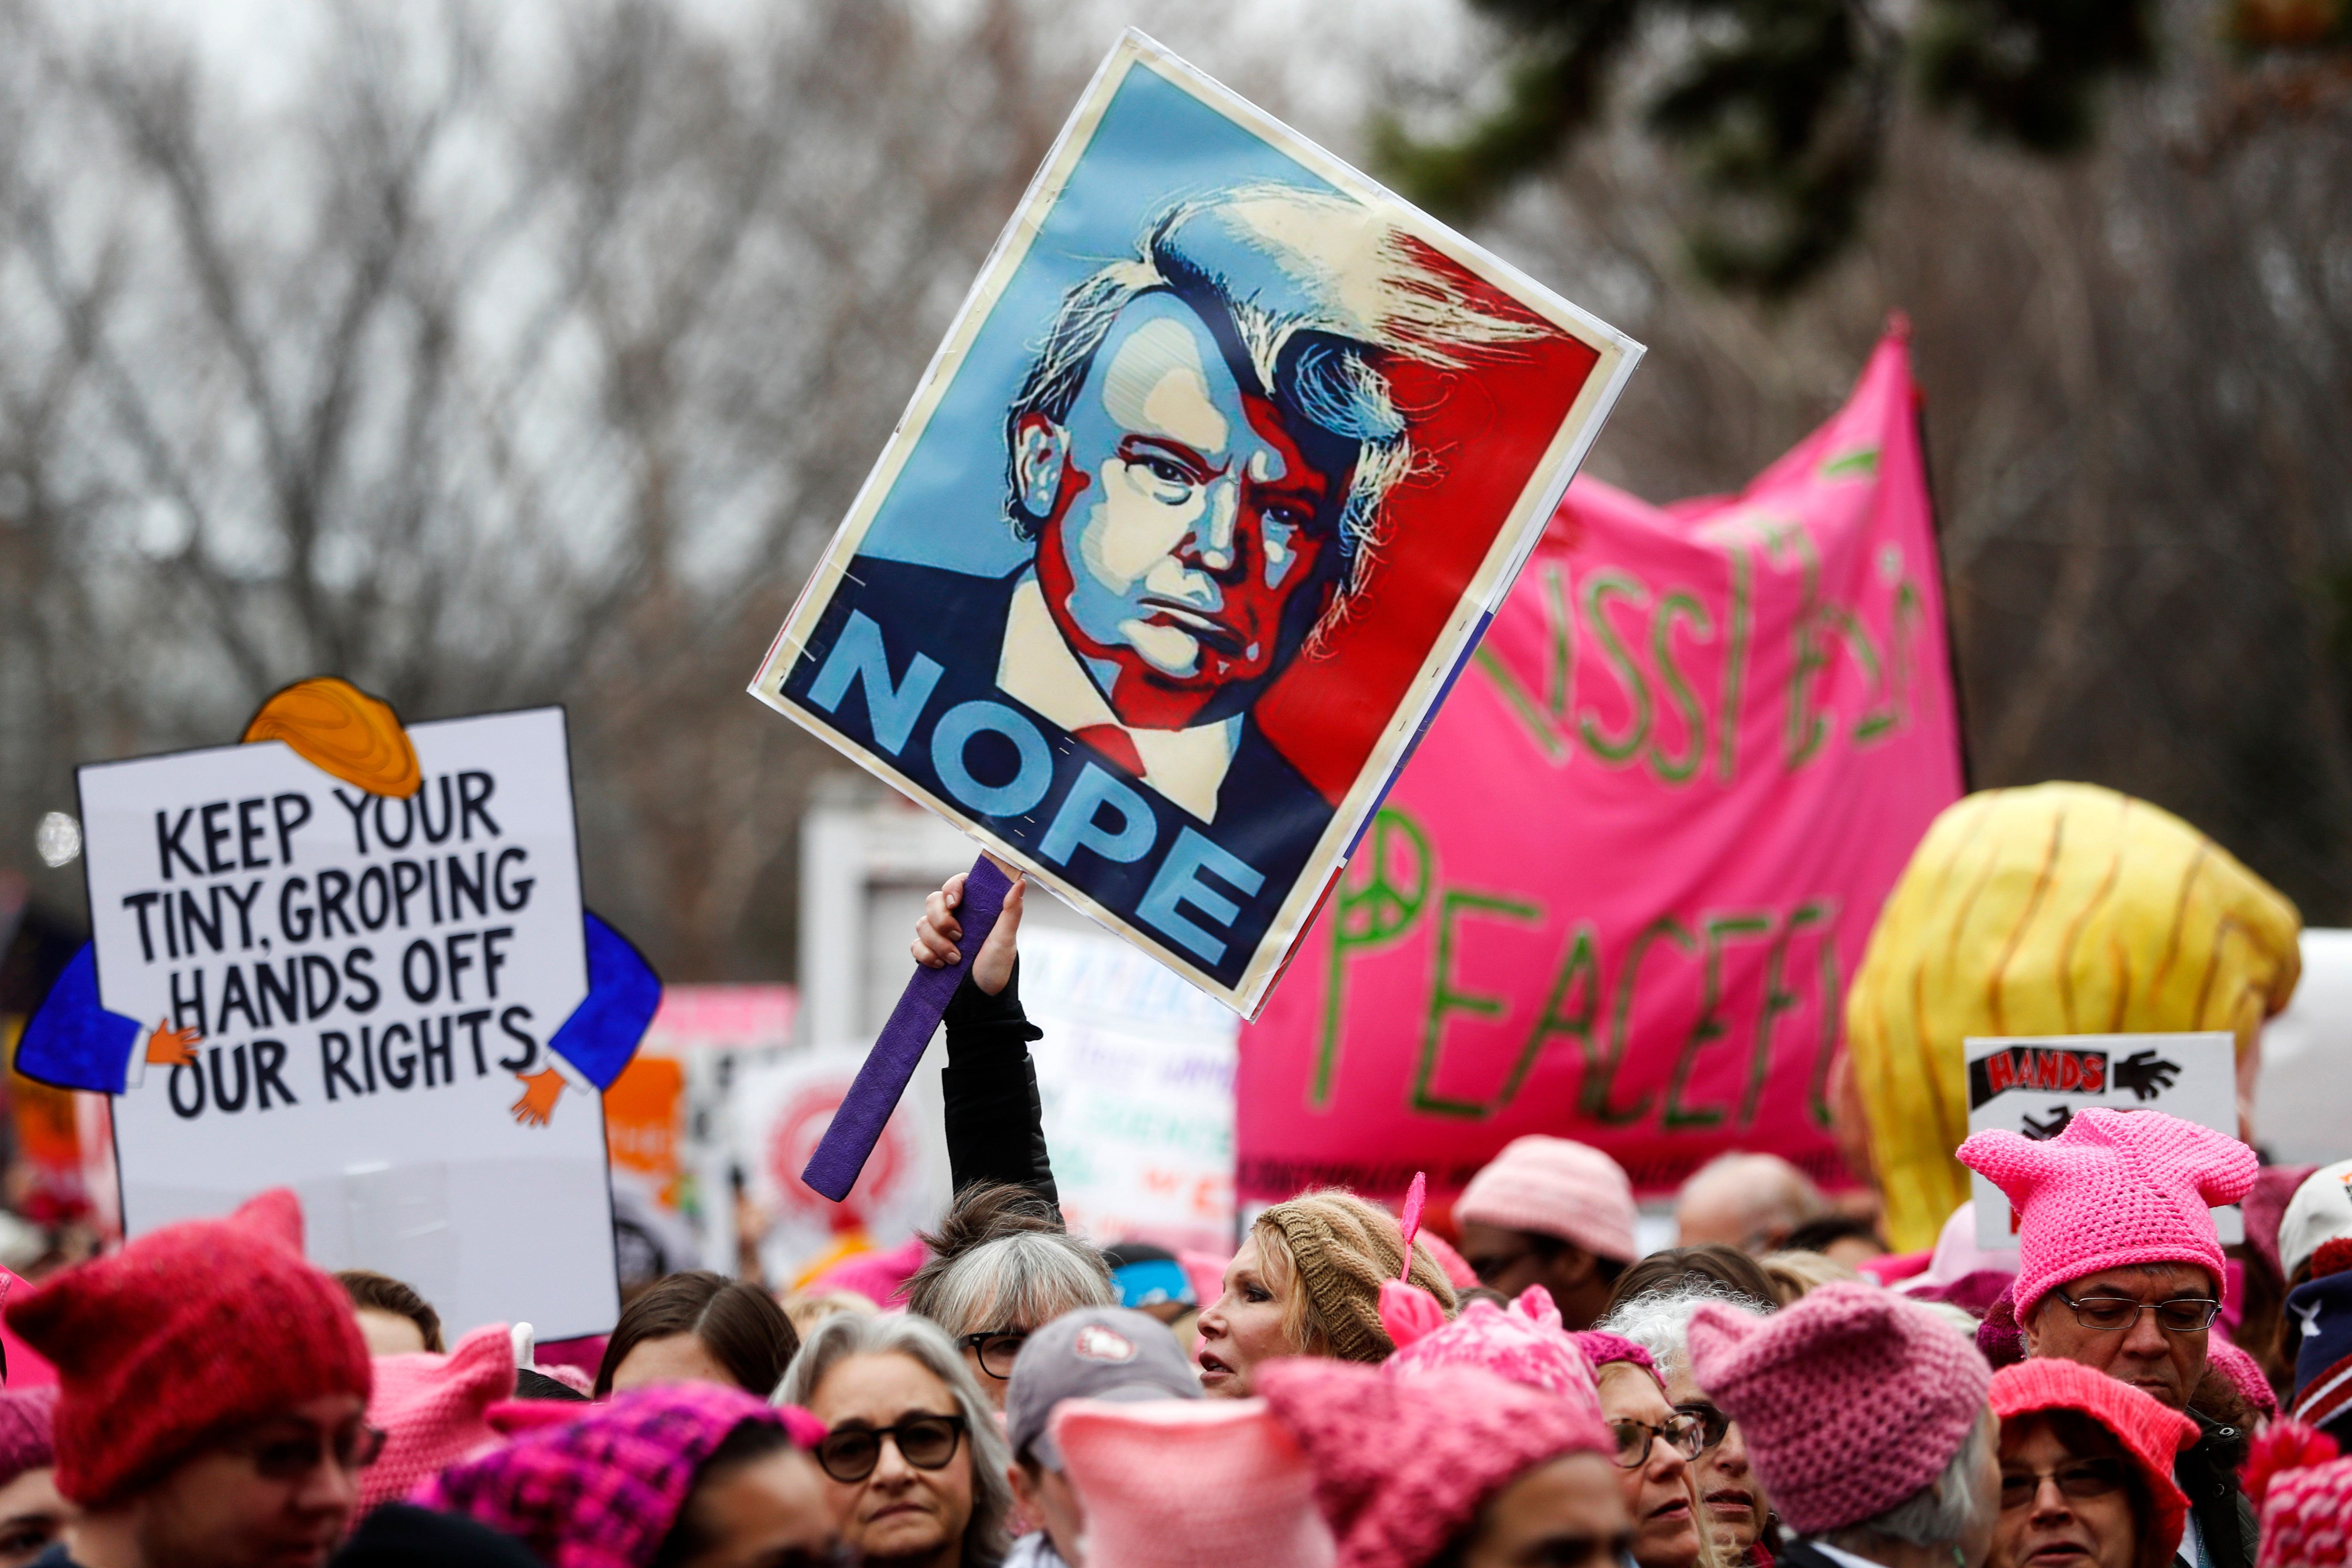 Protesters gather beside the stage at the Women's March on Washington during the first full day of Donald Trump's presidency, Saturday, Jan. 21, 2017 in Washington. Organizers of the Women's March on Washington expect more than 200,000 people to attend the gathering. Other protests are expected in other U.S. cities. (AP Photo/John Minchillo)